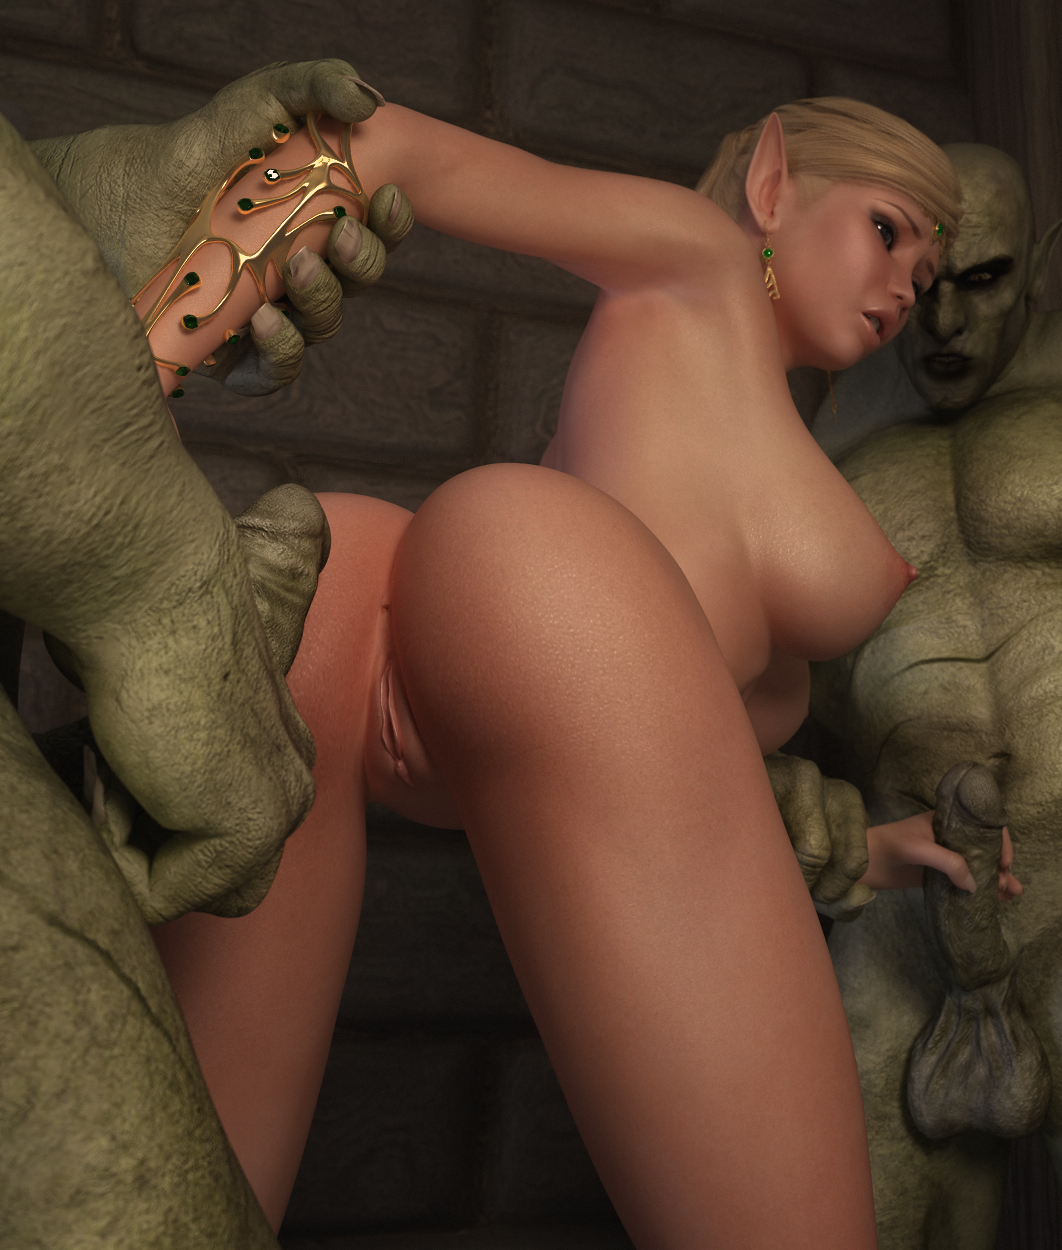 Free online 3d monster porn videos erotic scene